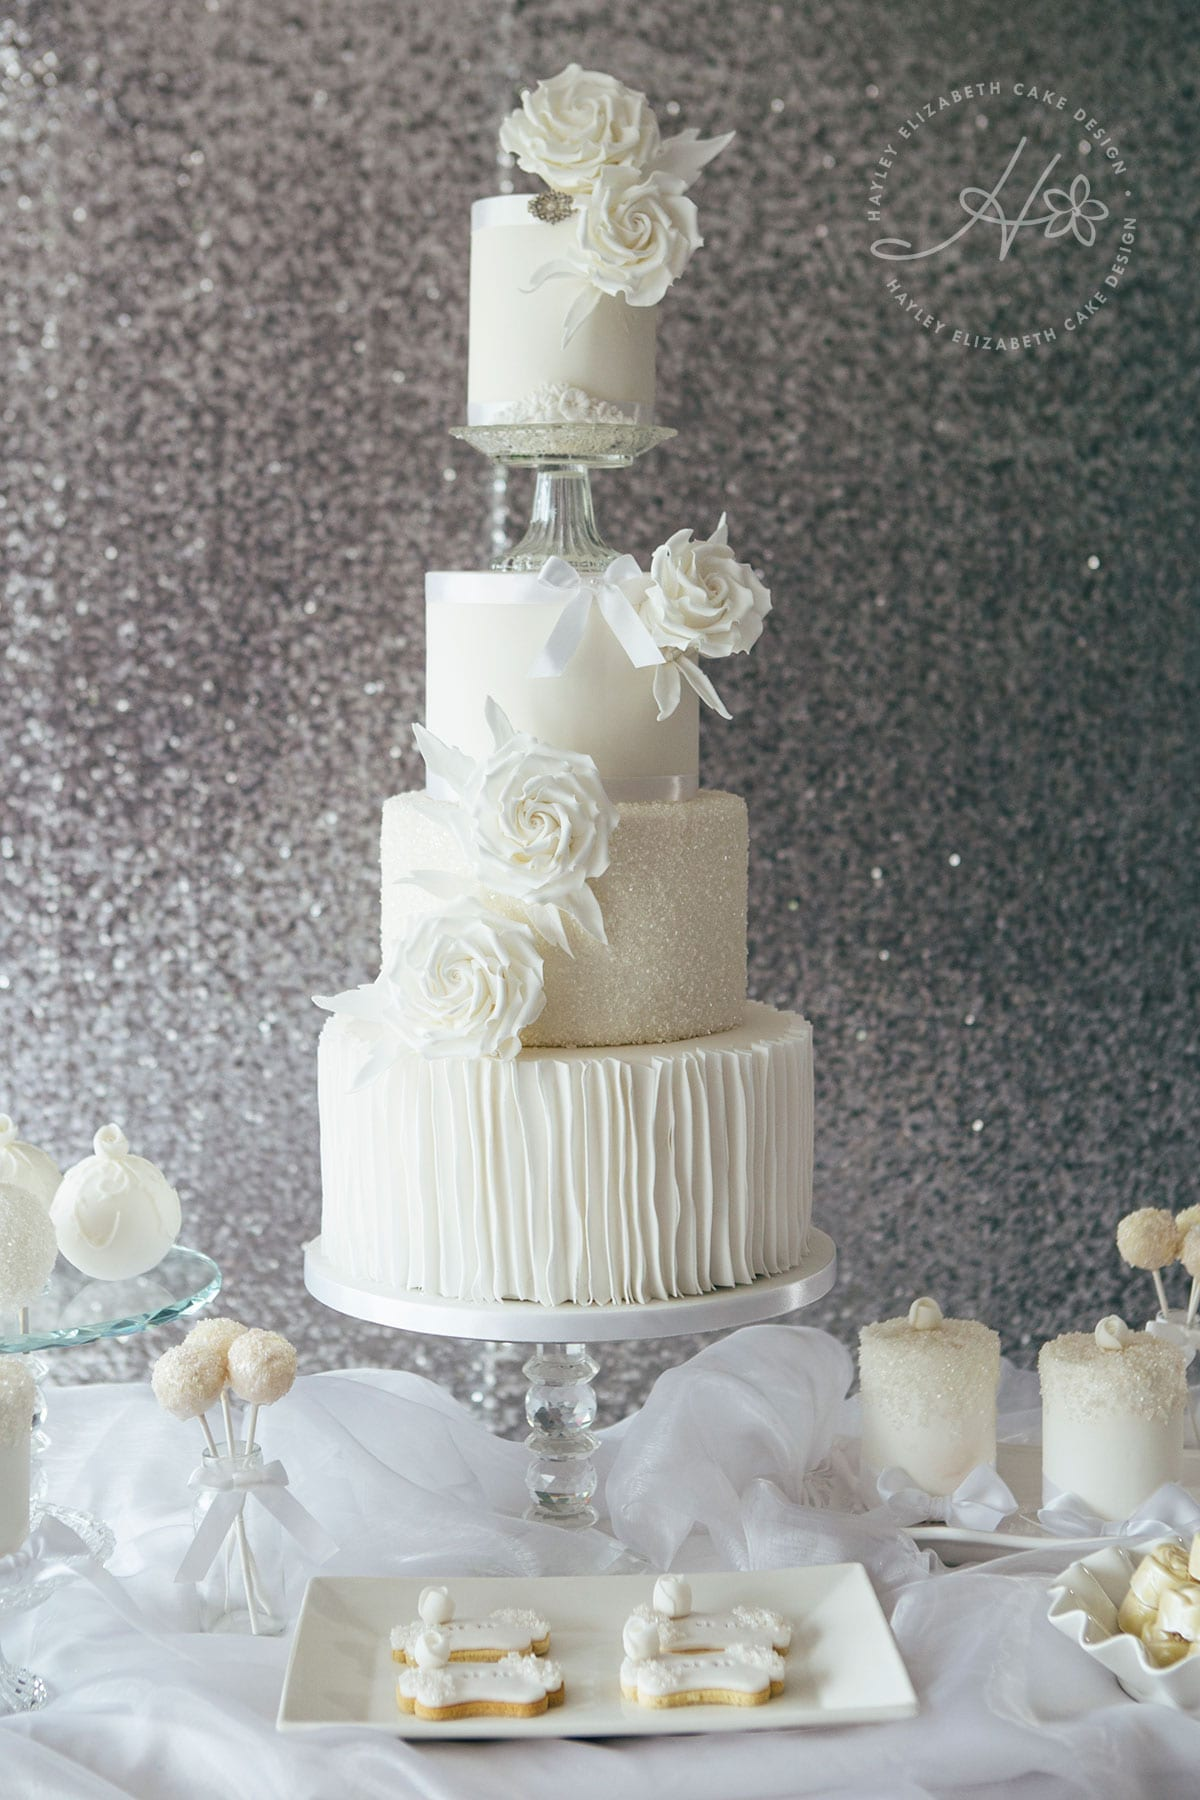 All white dessert table, luxury wedding cake, cake pops, iced biscuits, mini cakes, silver and white wedding cake, dessert bar, white sequin wedding cake, sugar flowers, wedding cake inspiration